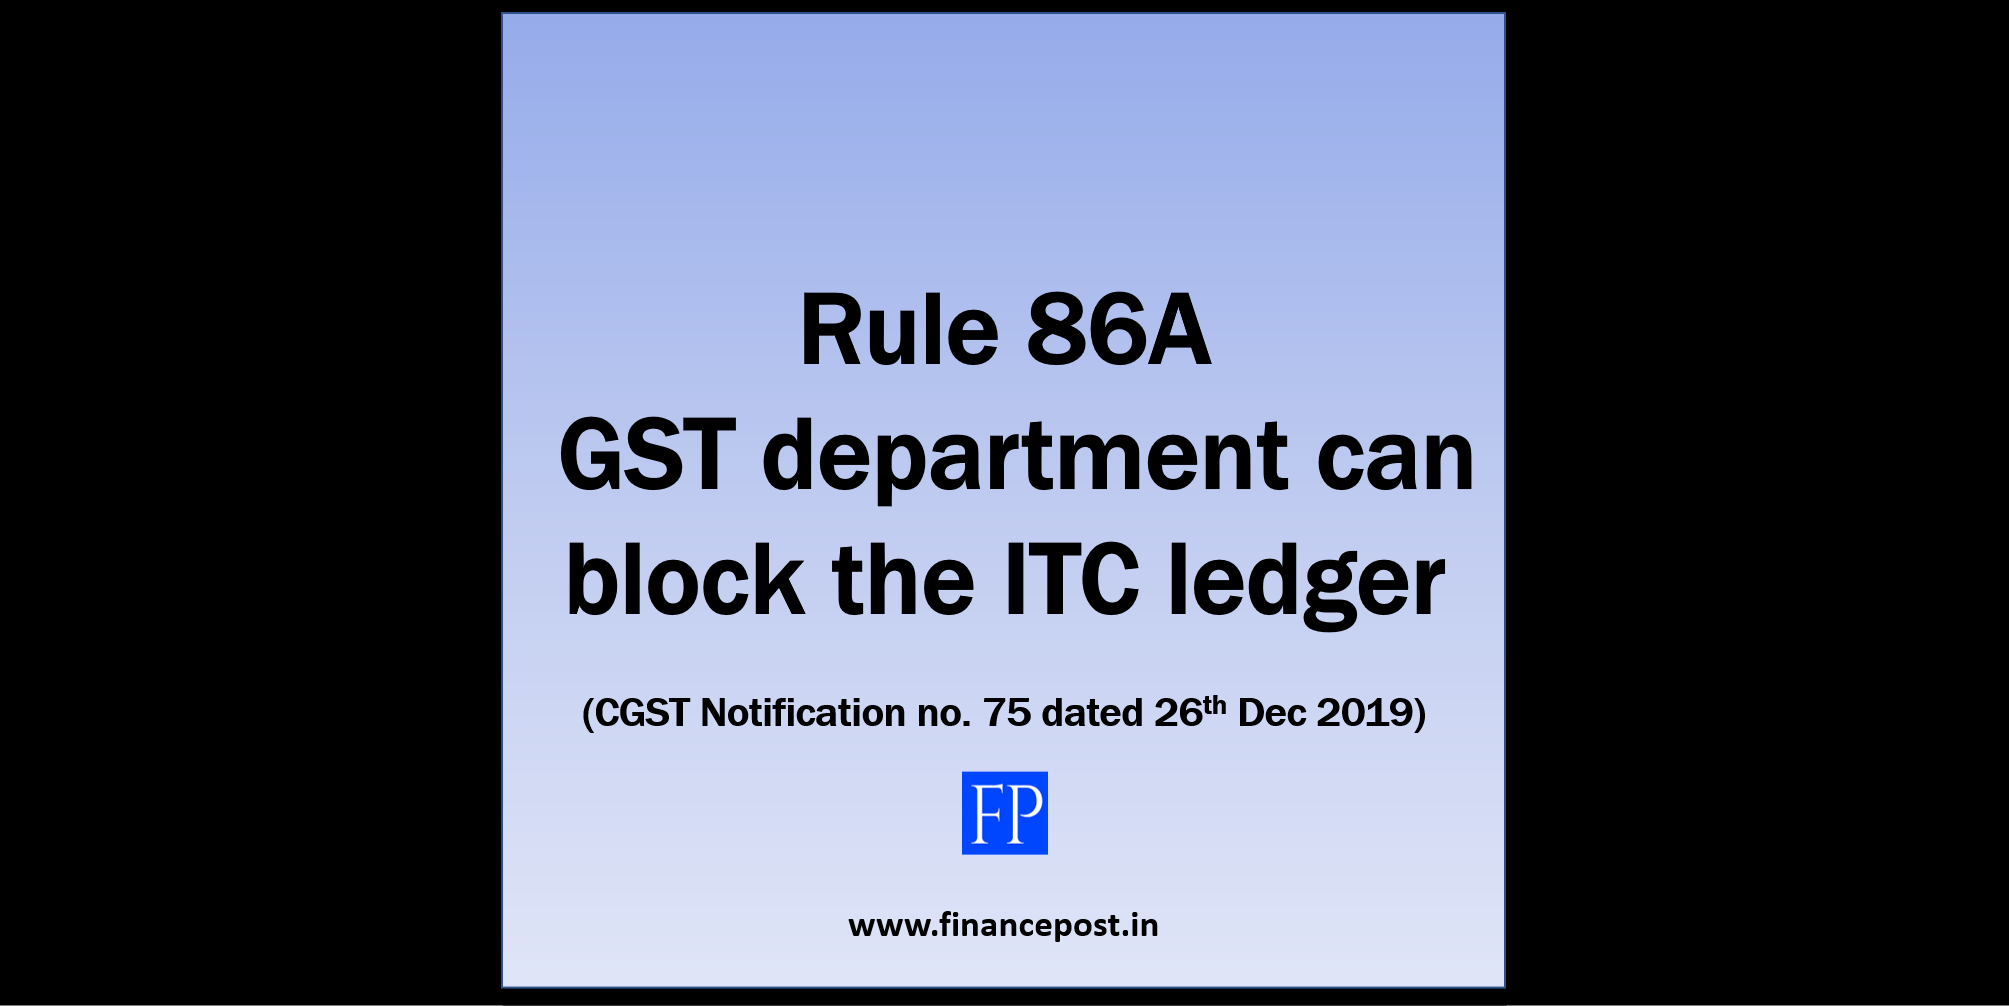 Rule 86A GST department can block the ITC ledger